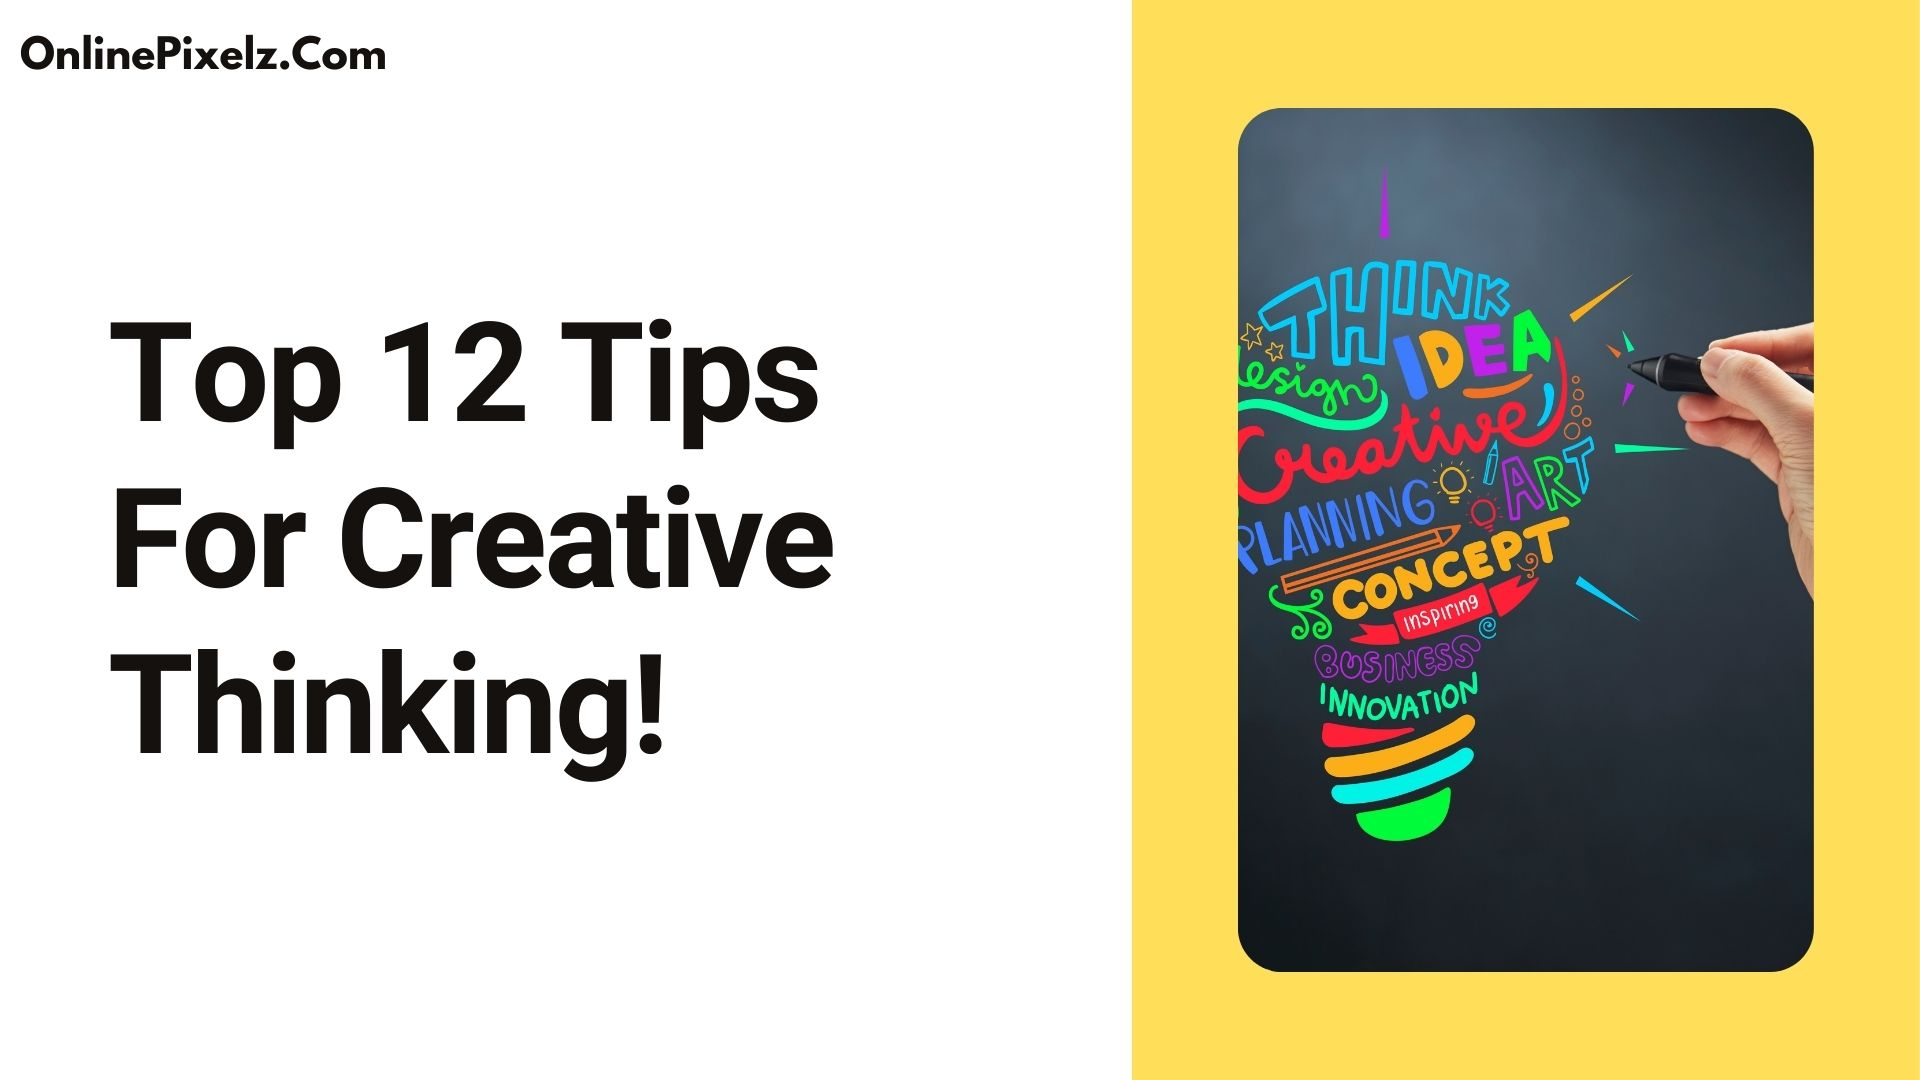 Tips For Creative Thinking